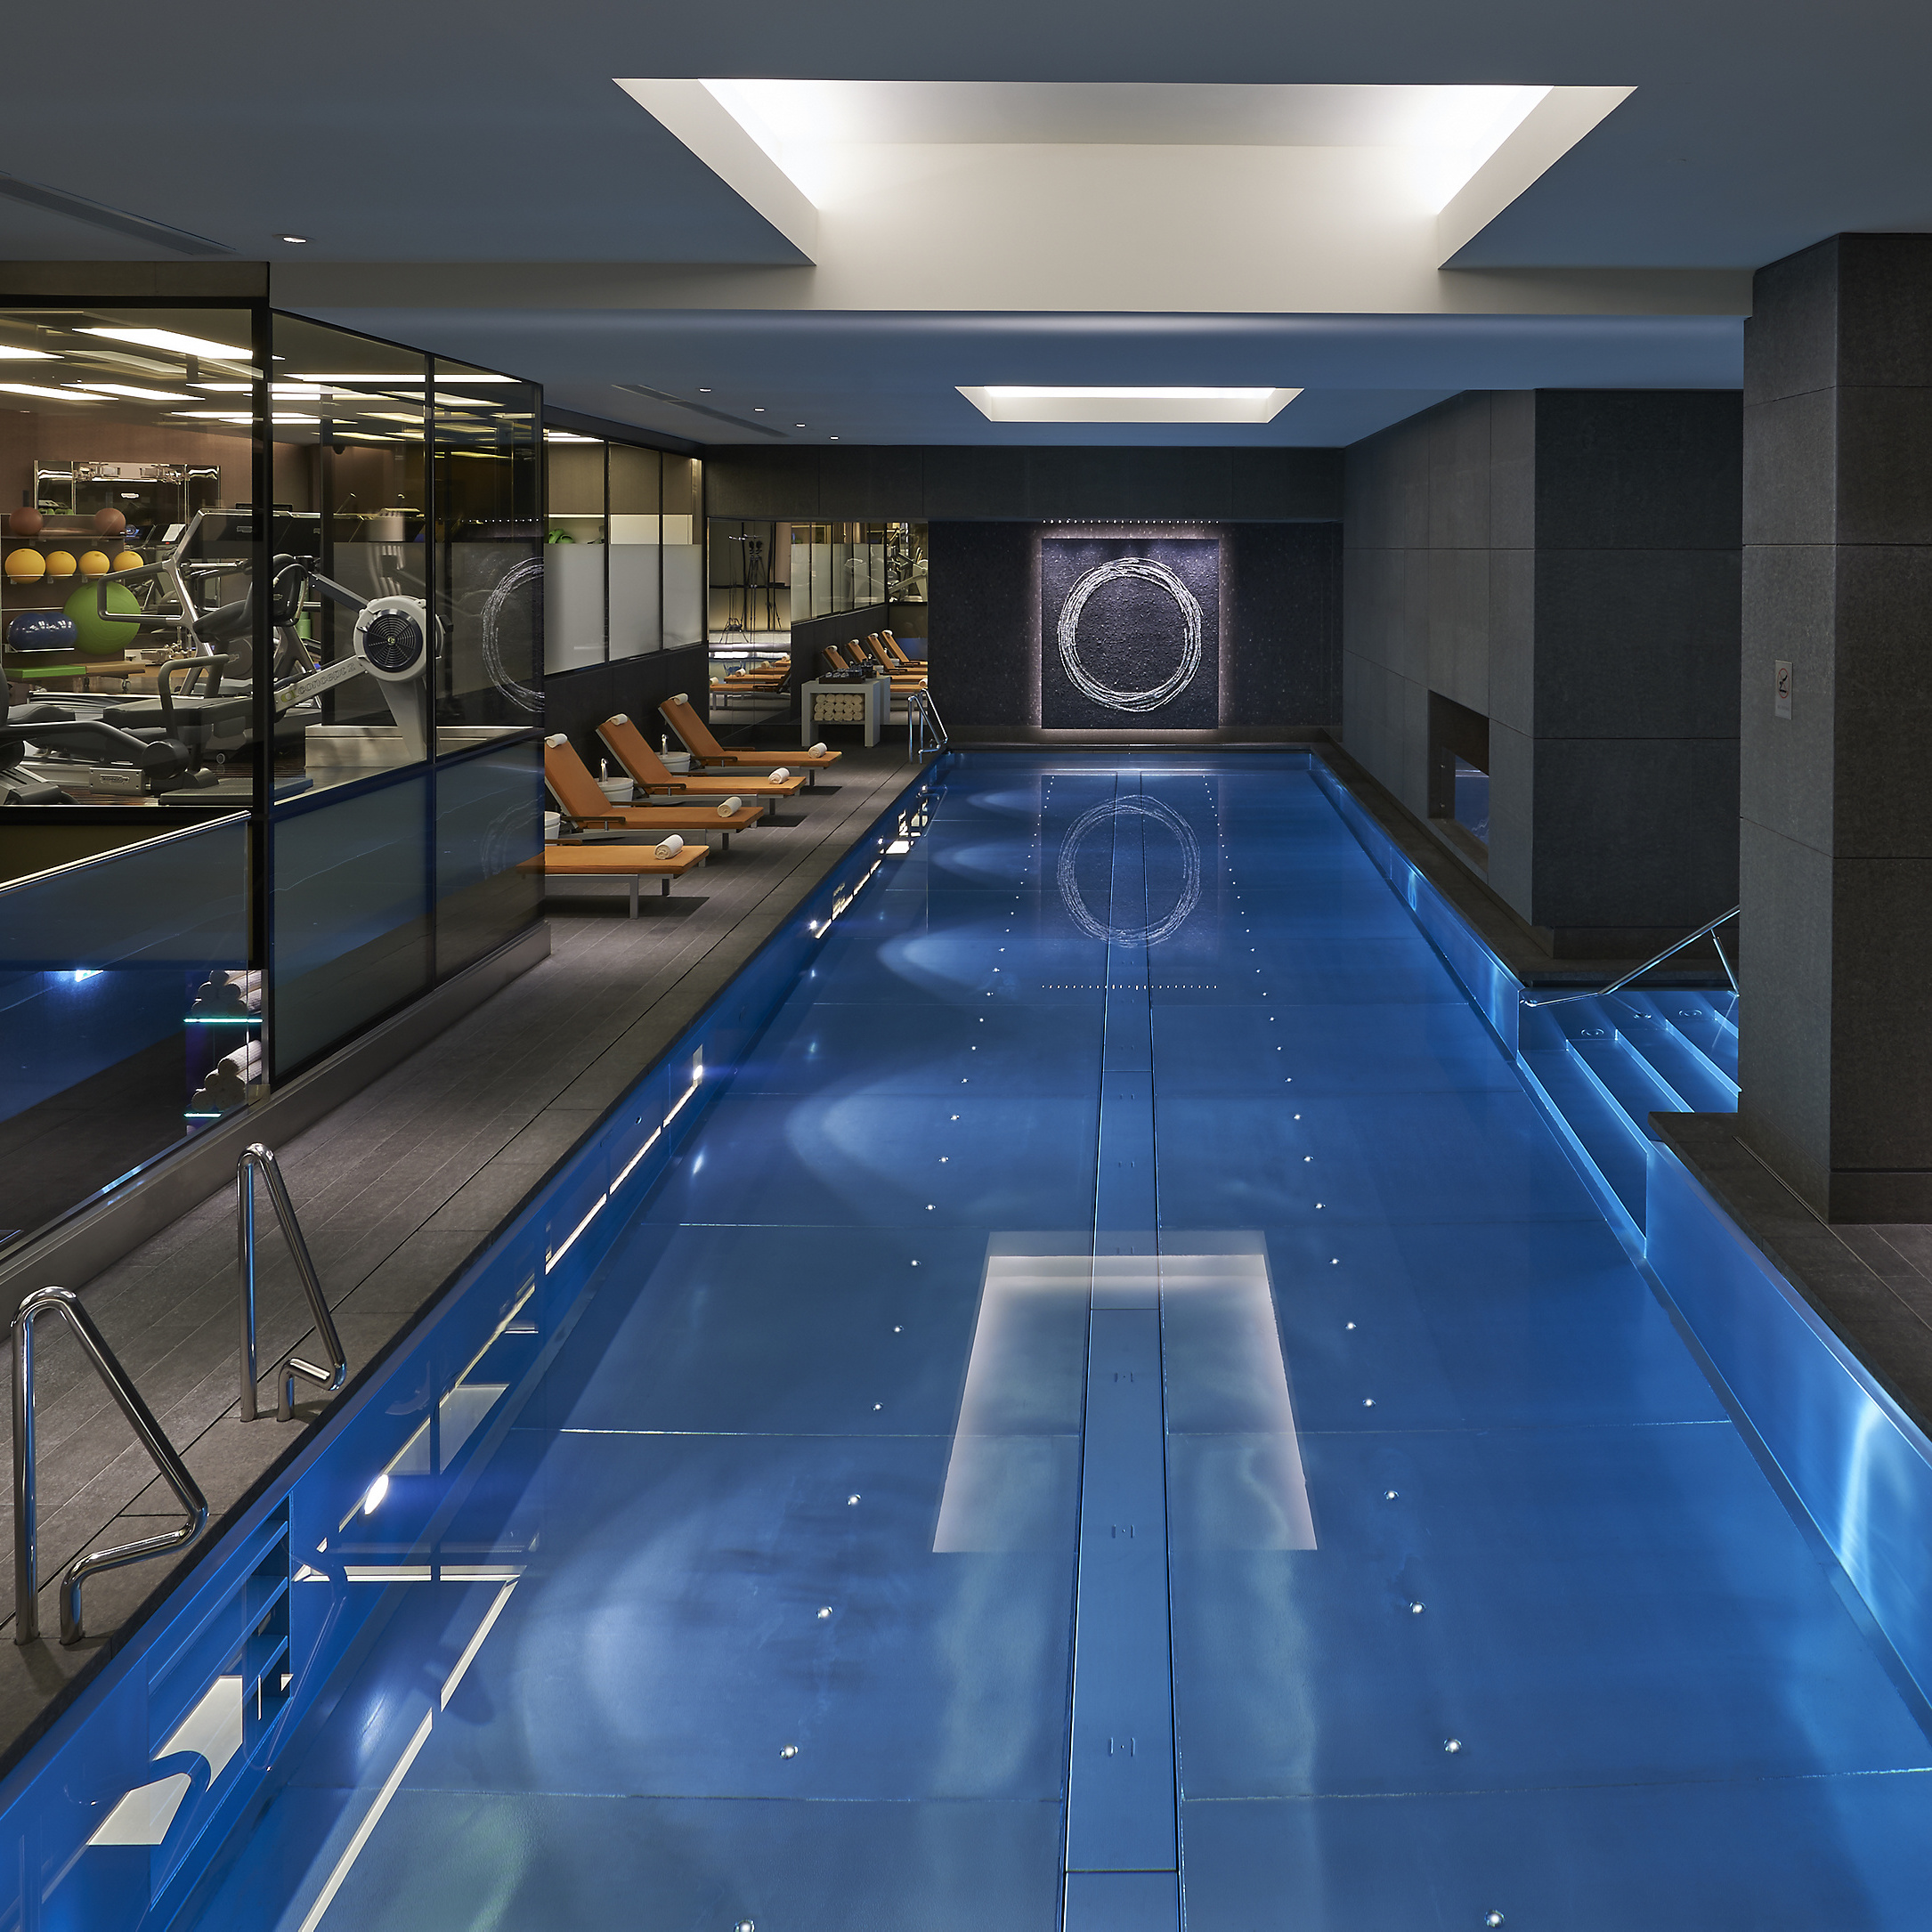 Feel tranquility at The Spa at The Mandarin Oriental